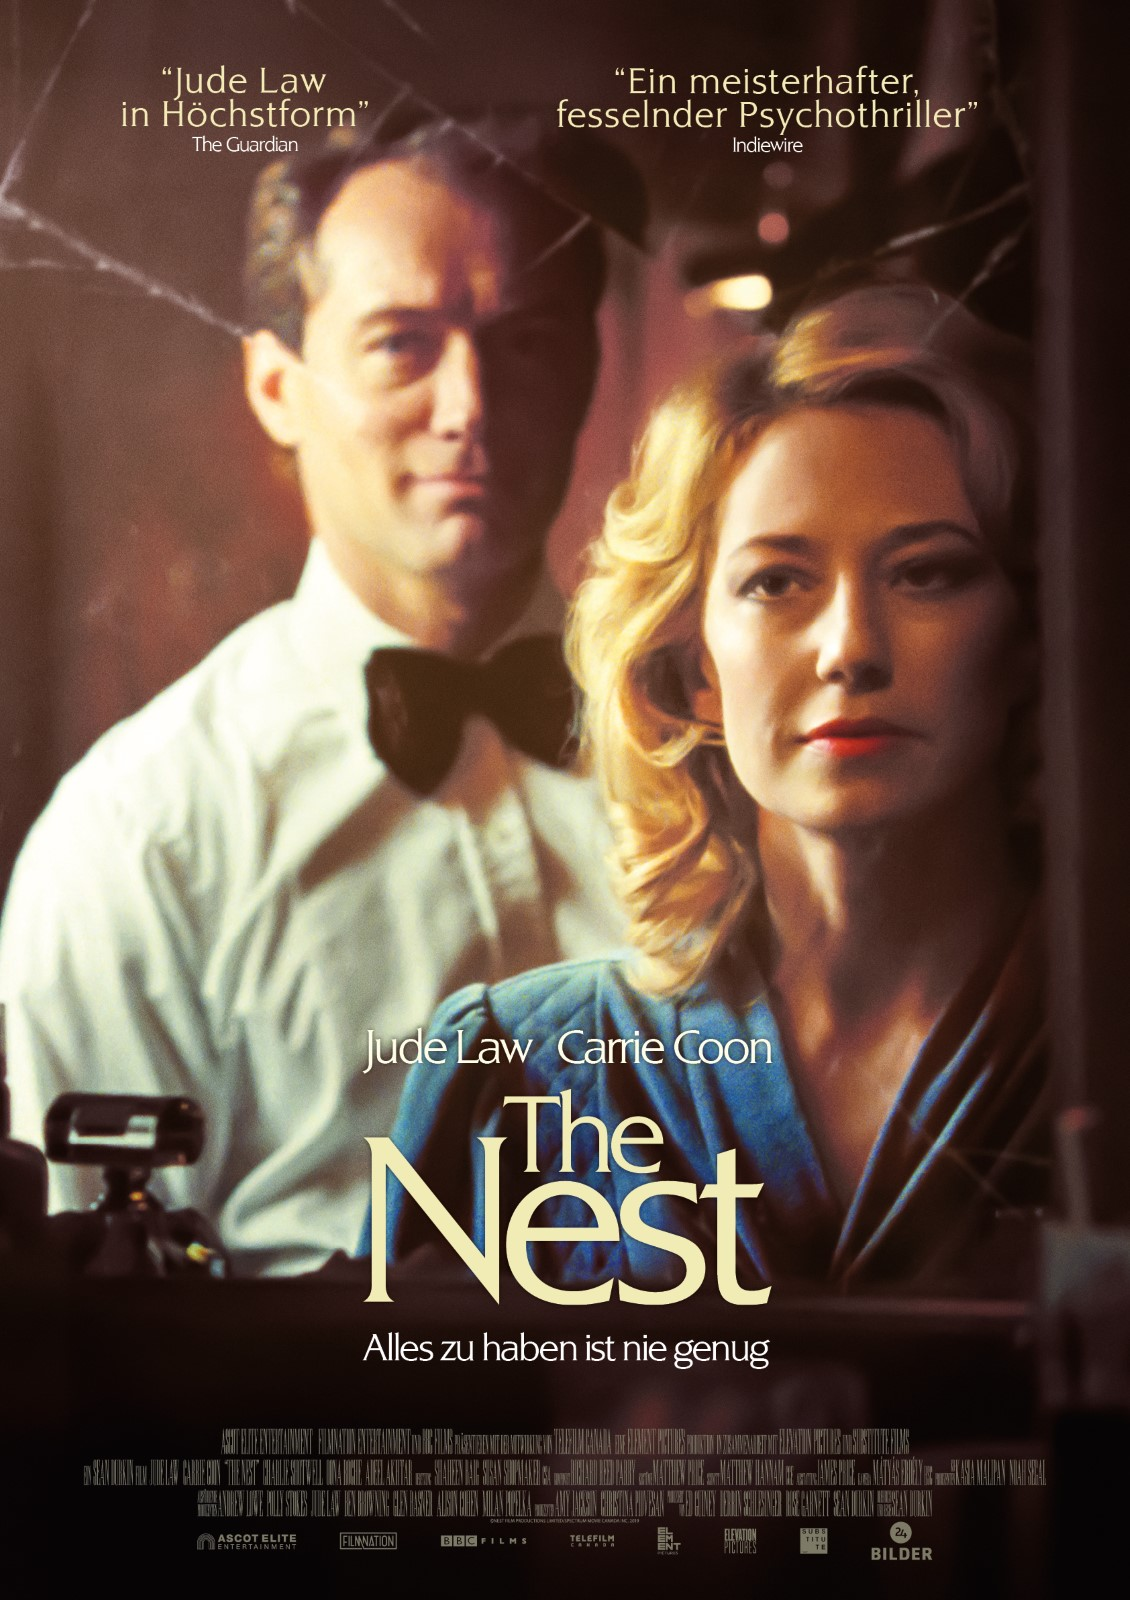 The Nest - Preview